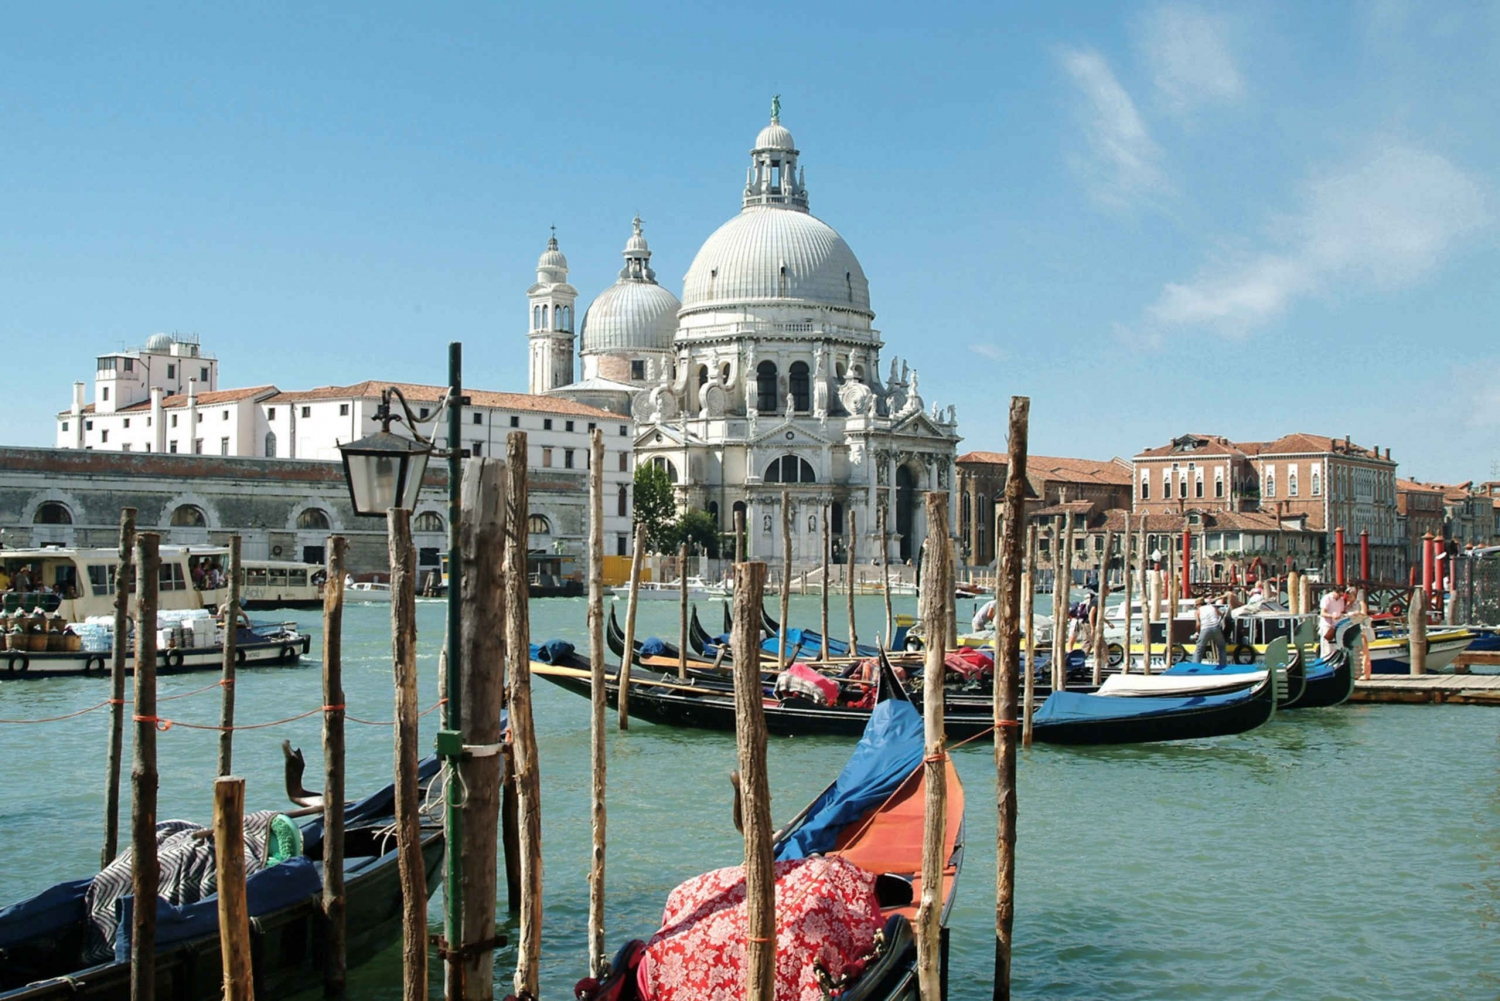 From Pula: Full-Day Boat Trip to Venice 1-Way or Return